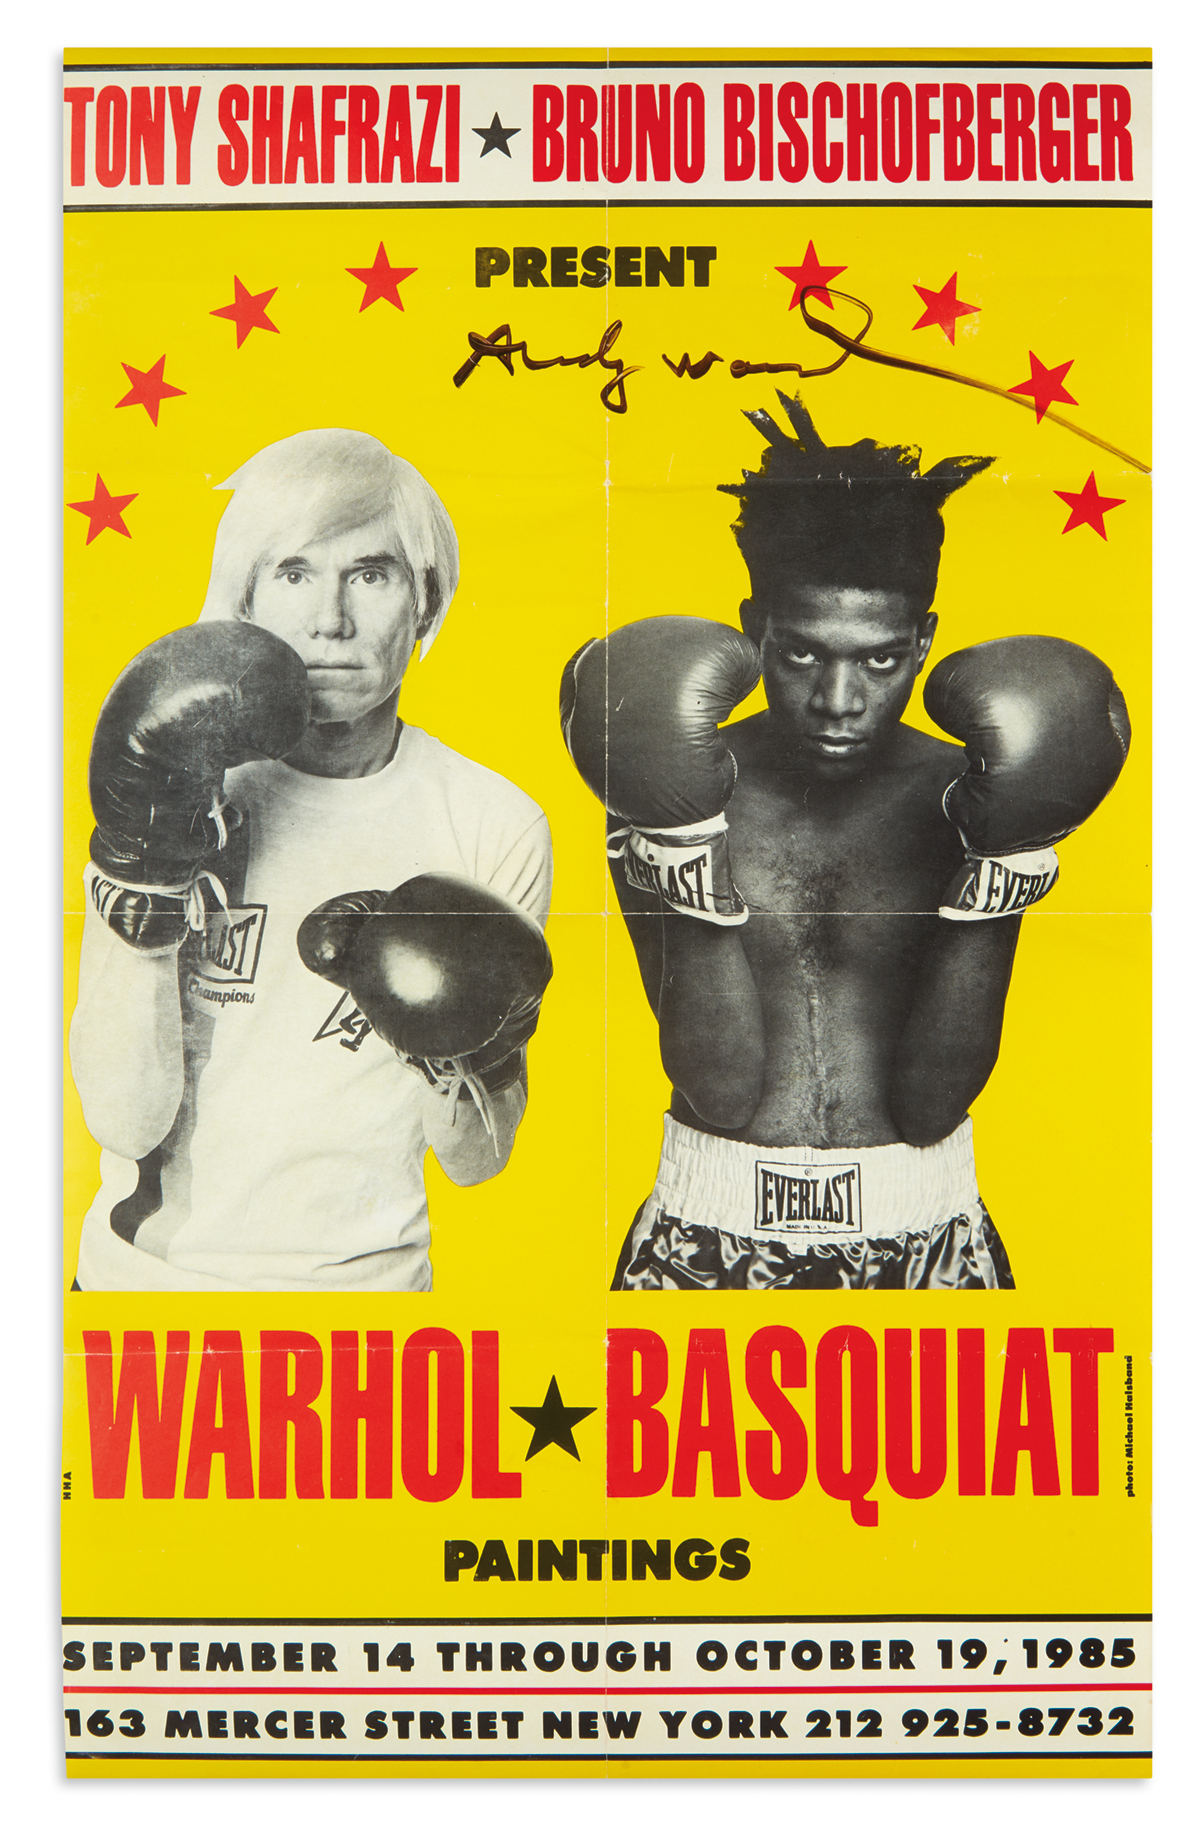 WARHOL-ANDY-Signature-on-a-poster-for-the-1985-Warhol-Basqui